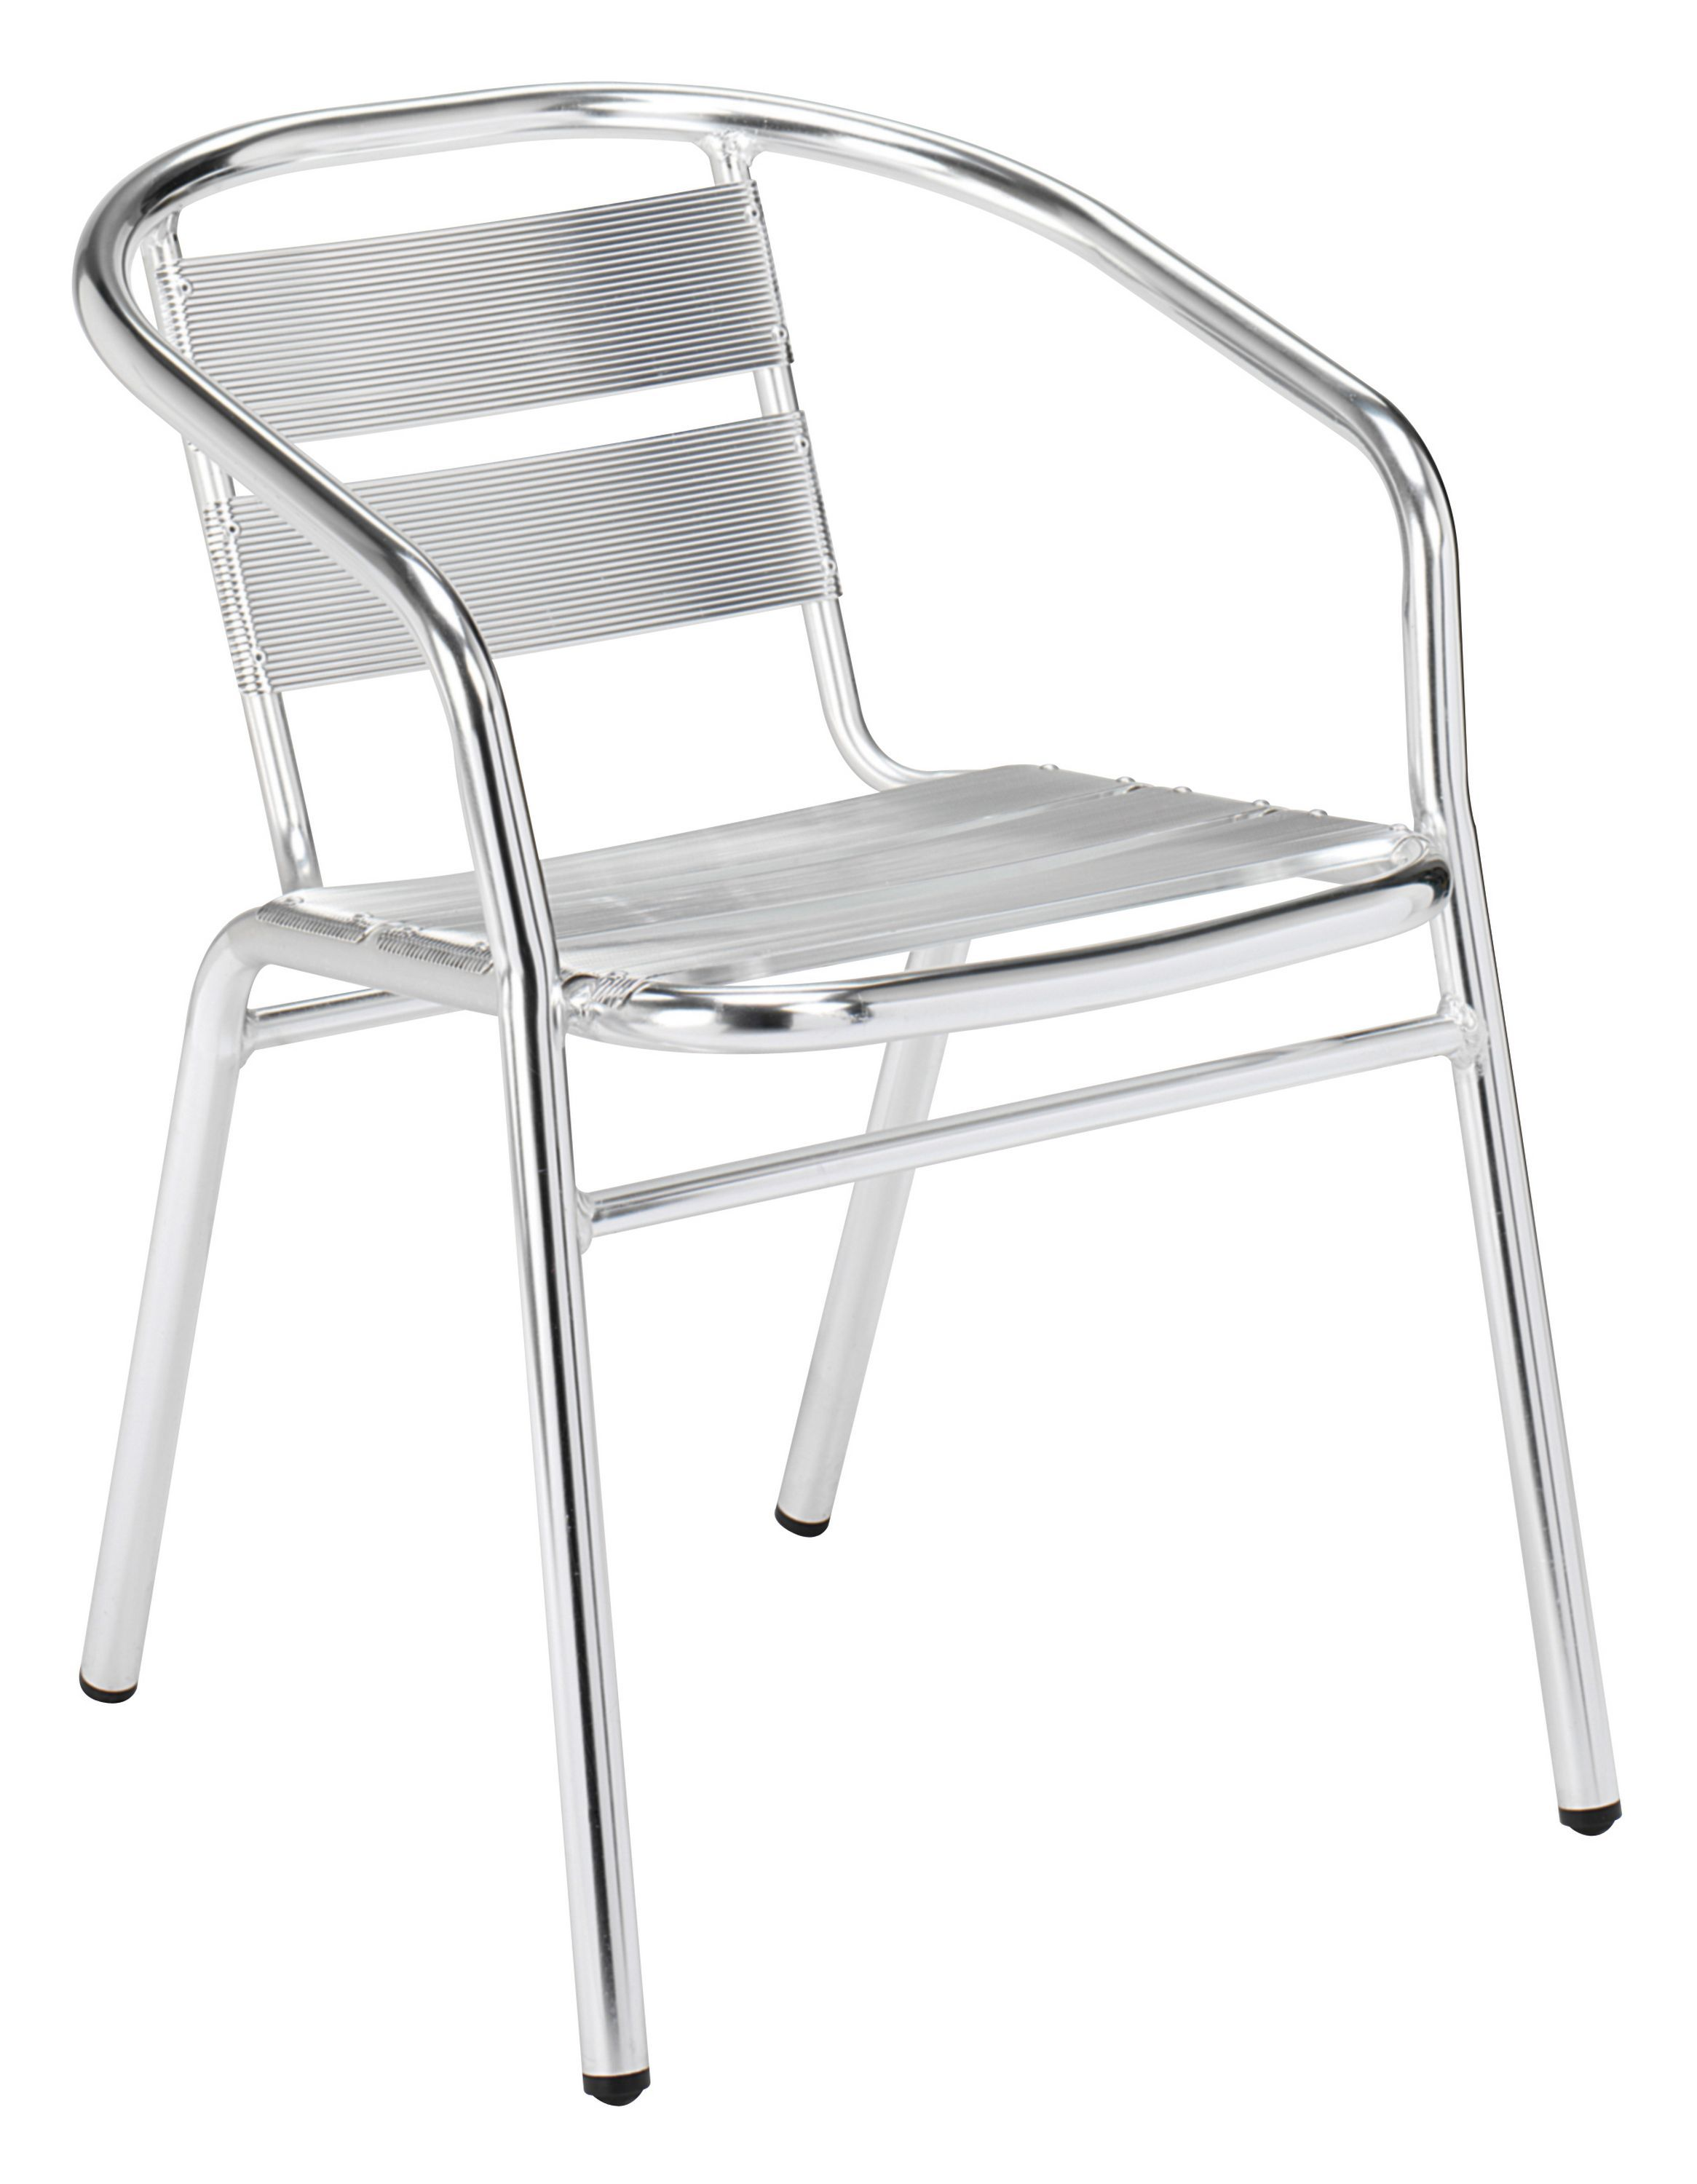 stackable bistro chairs  outdoor metal bistro chairs